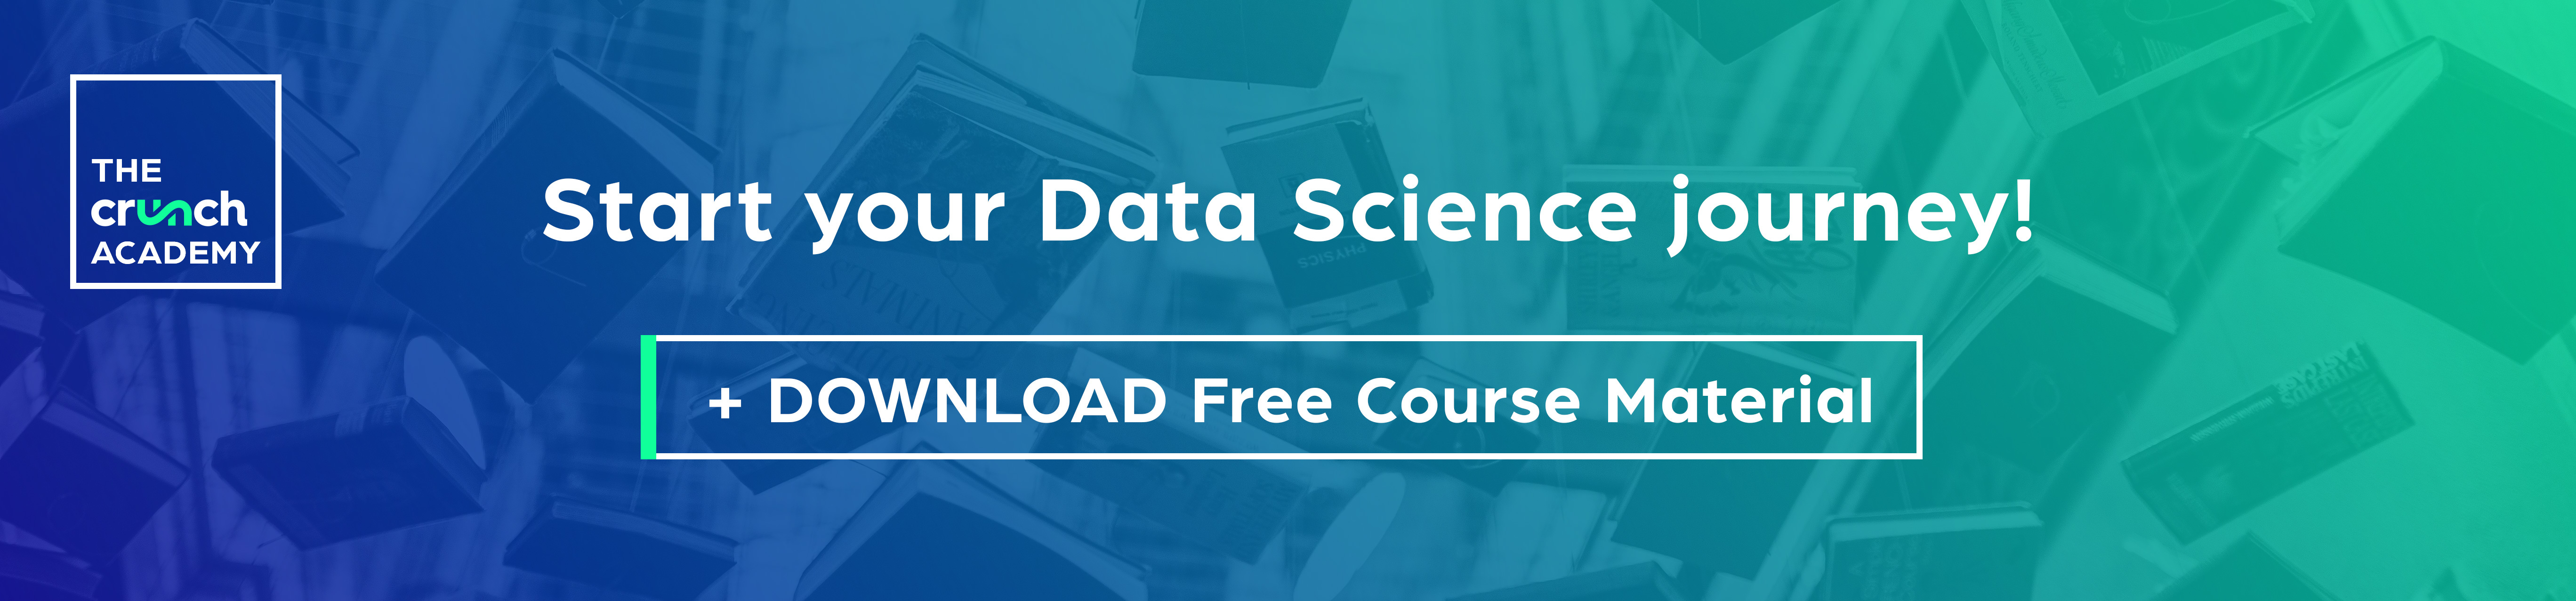 Free Data Science Course Material by Crunch